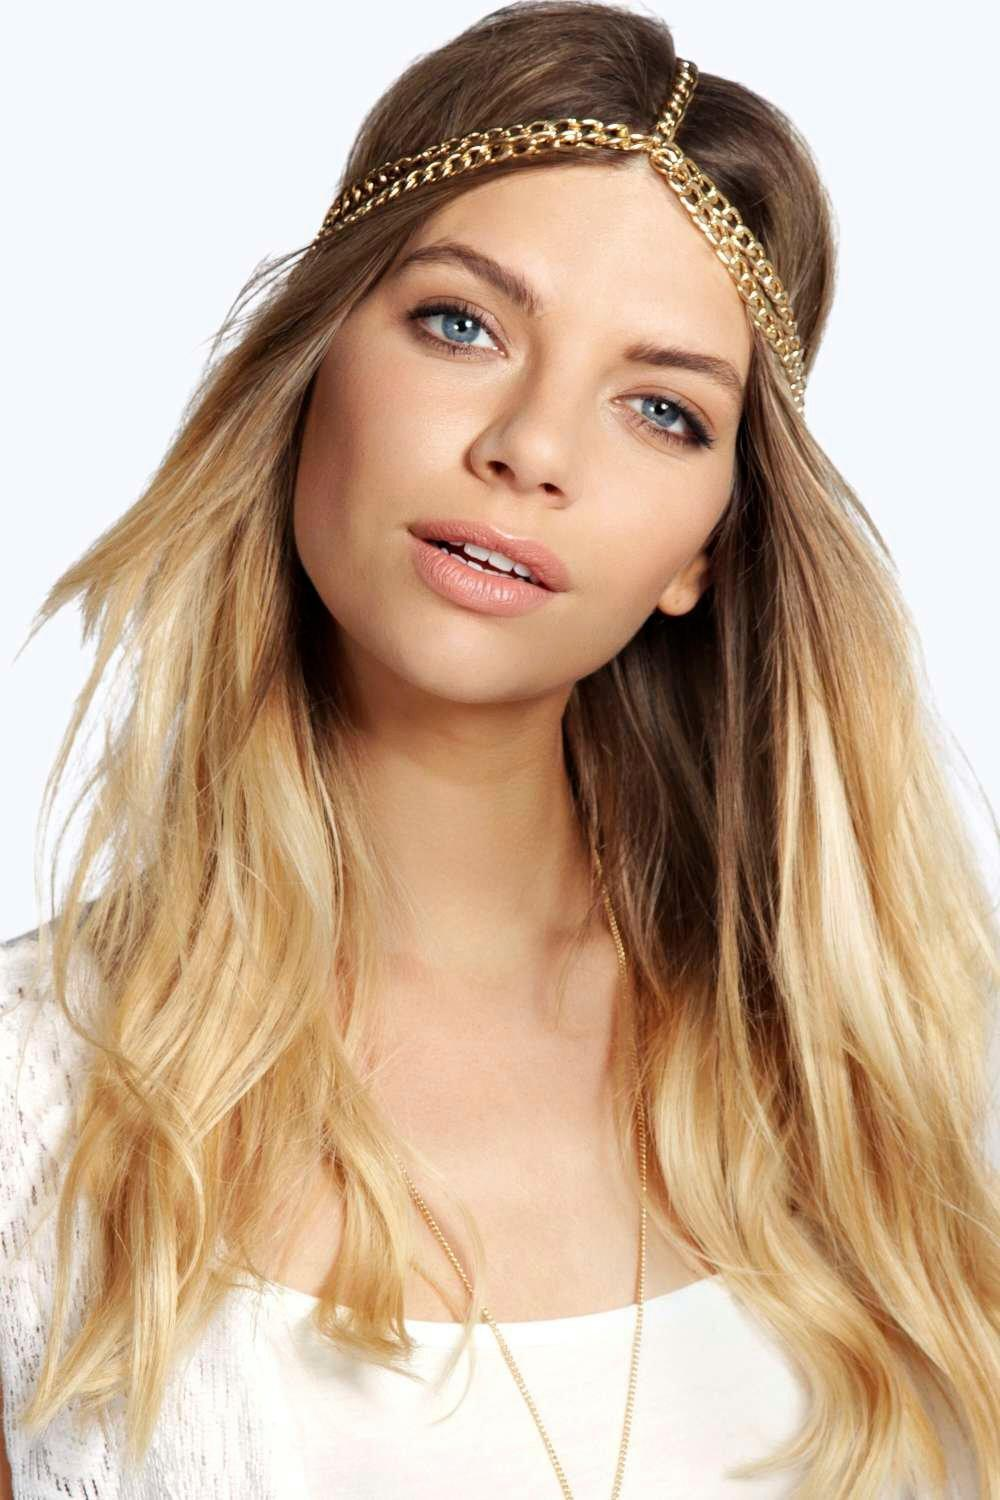 Chain Hair Crown - gold - Say bye to bad hair days